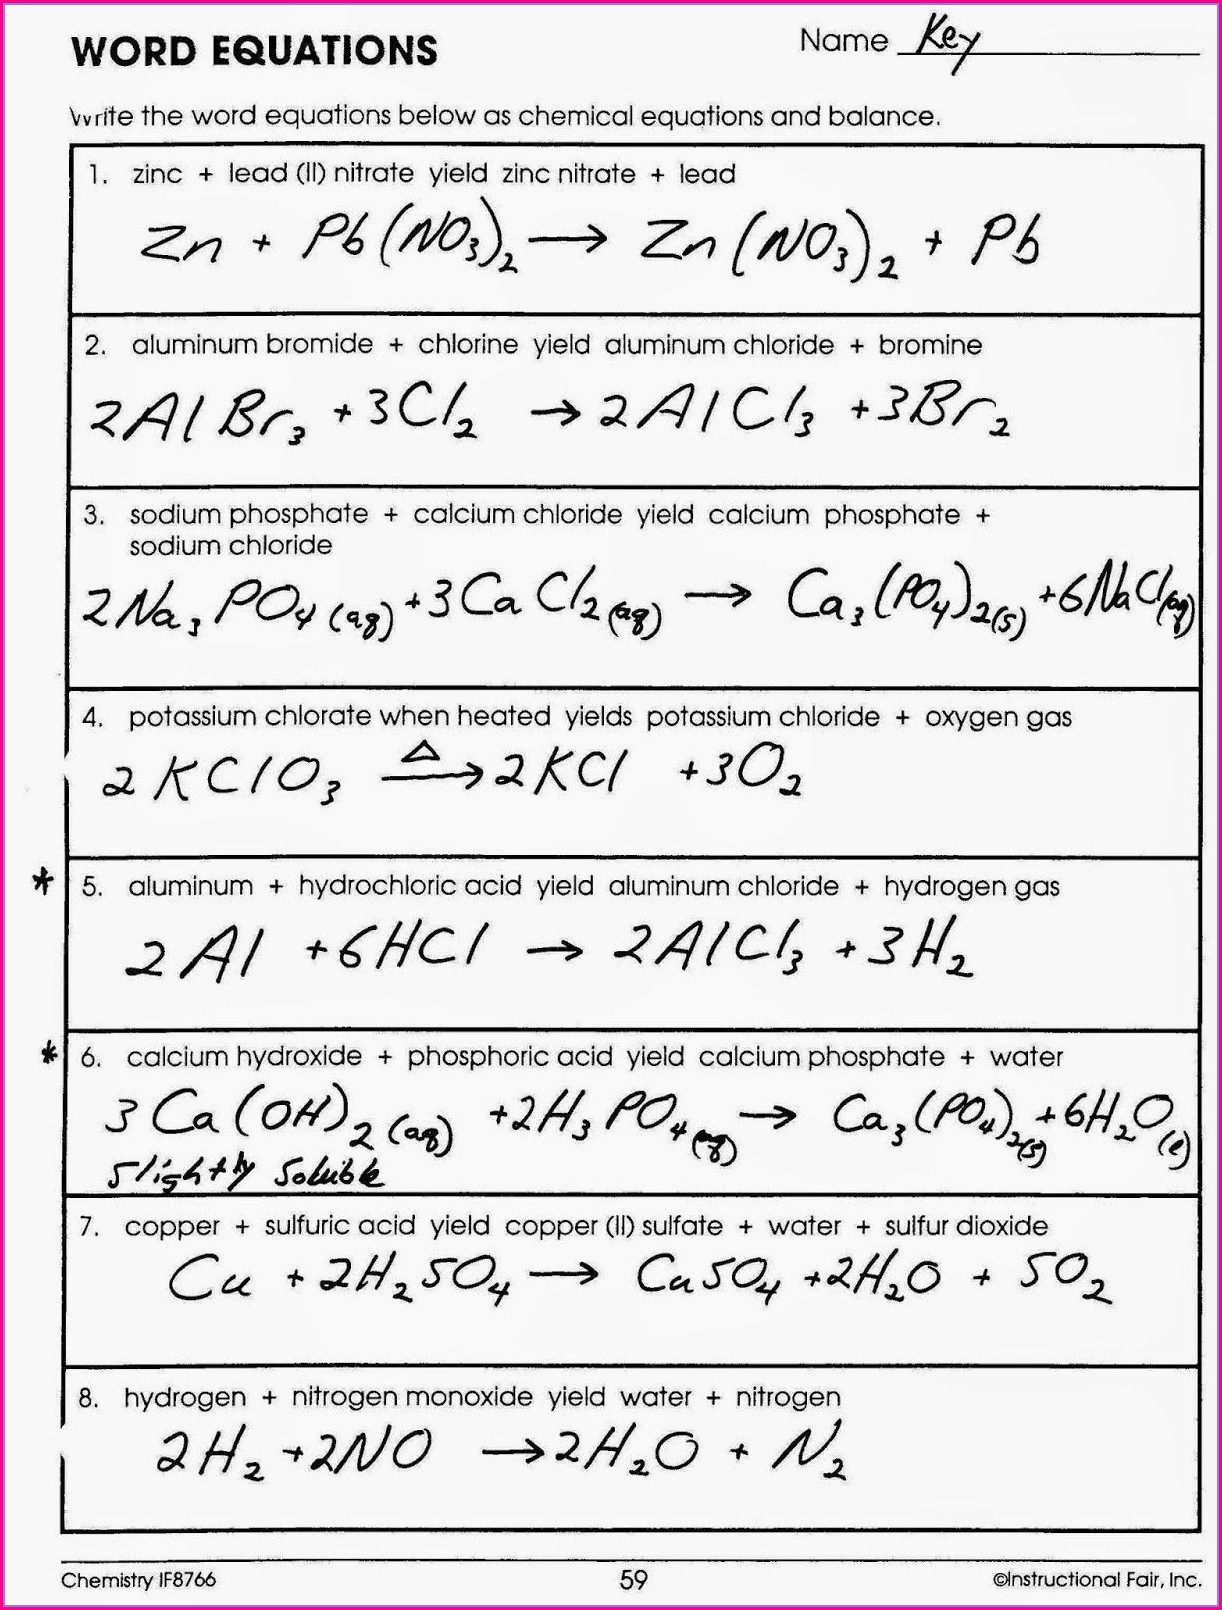 Balancing Chemical Word Equations Practice Worksheet With